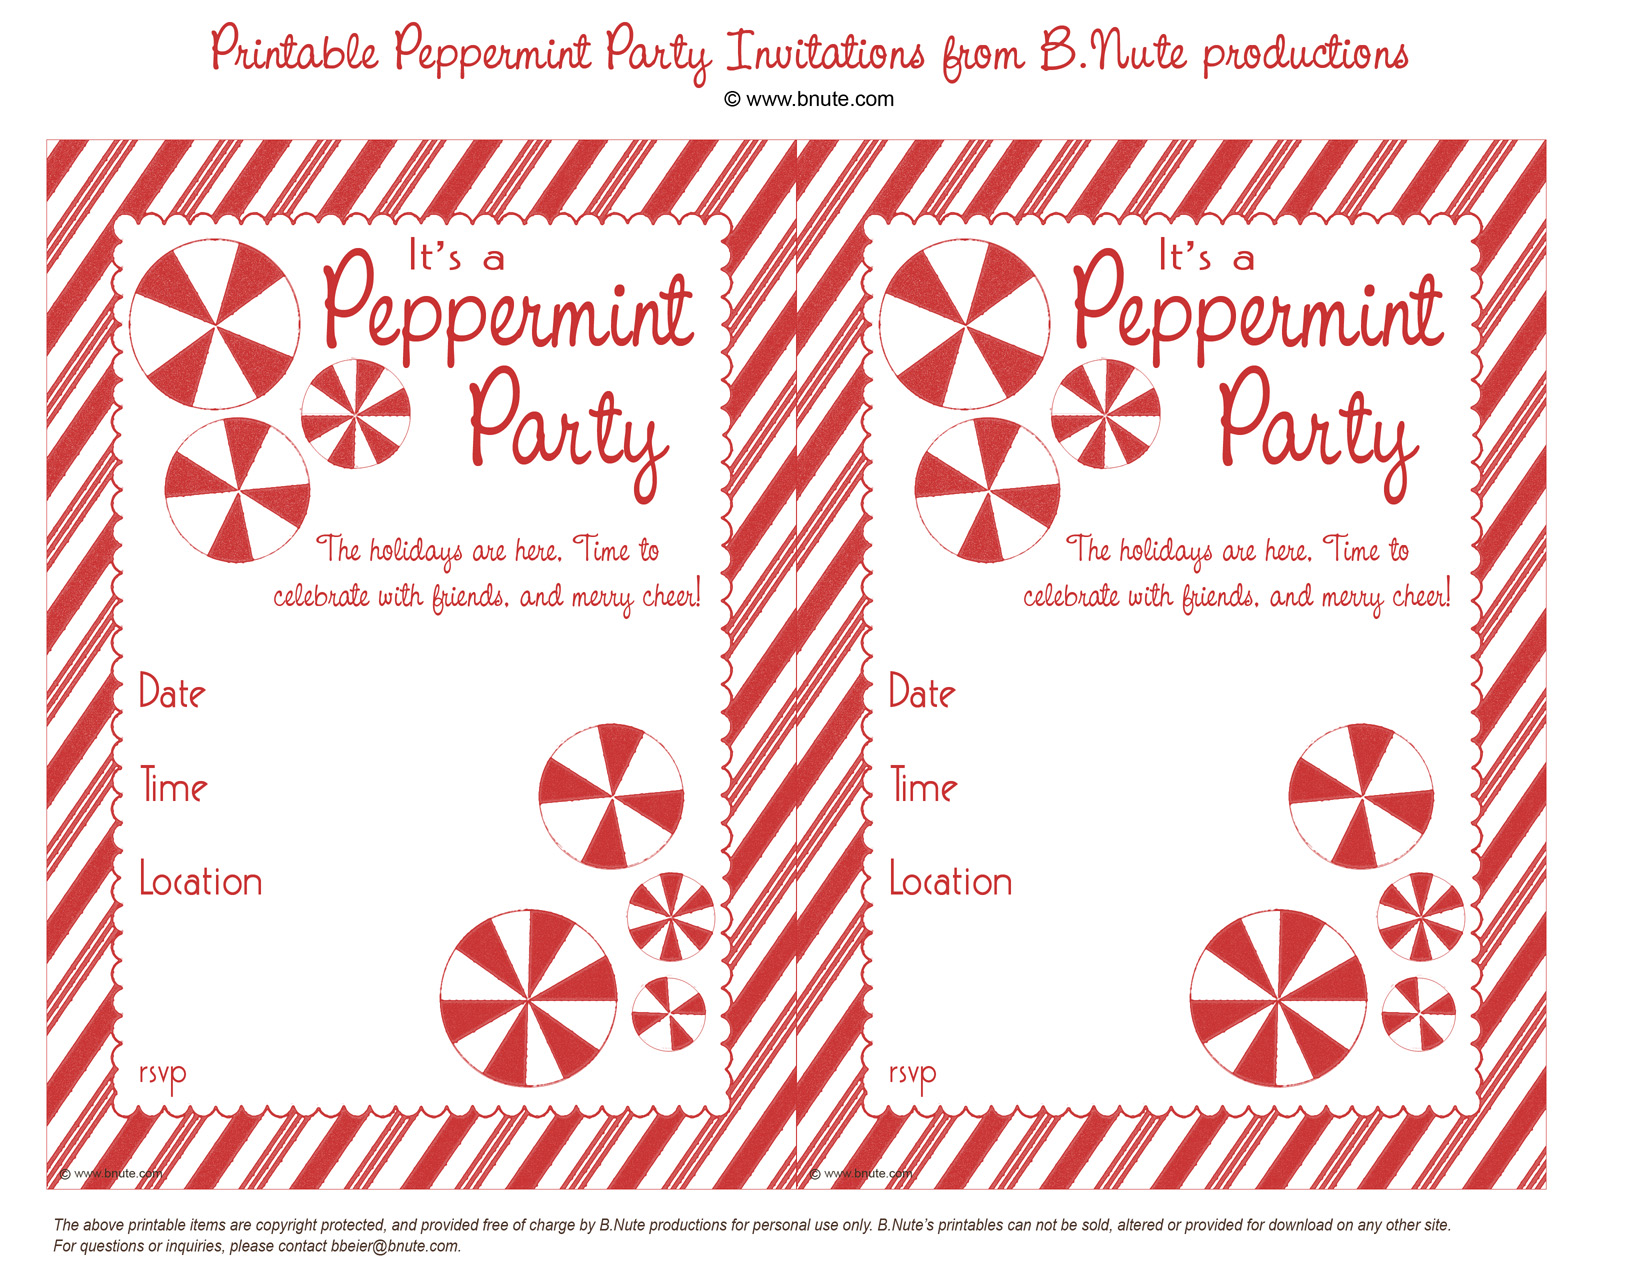 christmas party invitation email templates wedding invitation sample dinner invitation templates address labels word template christmas